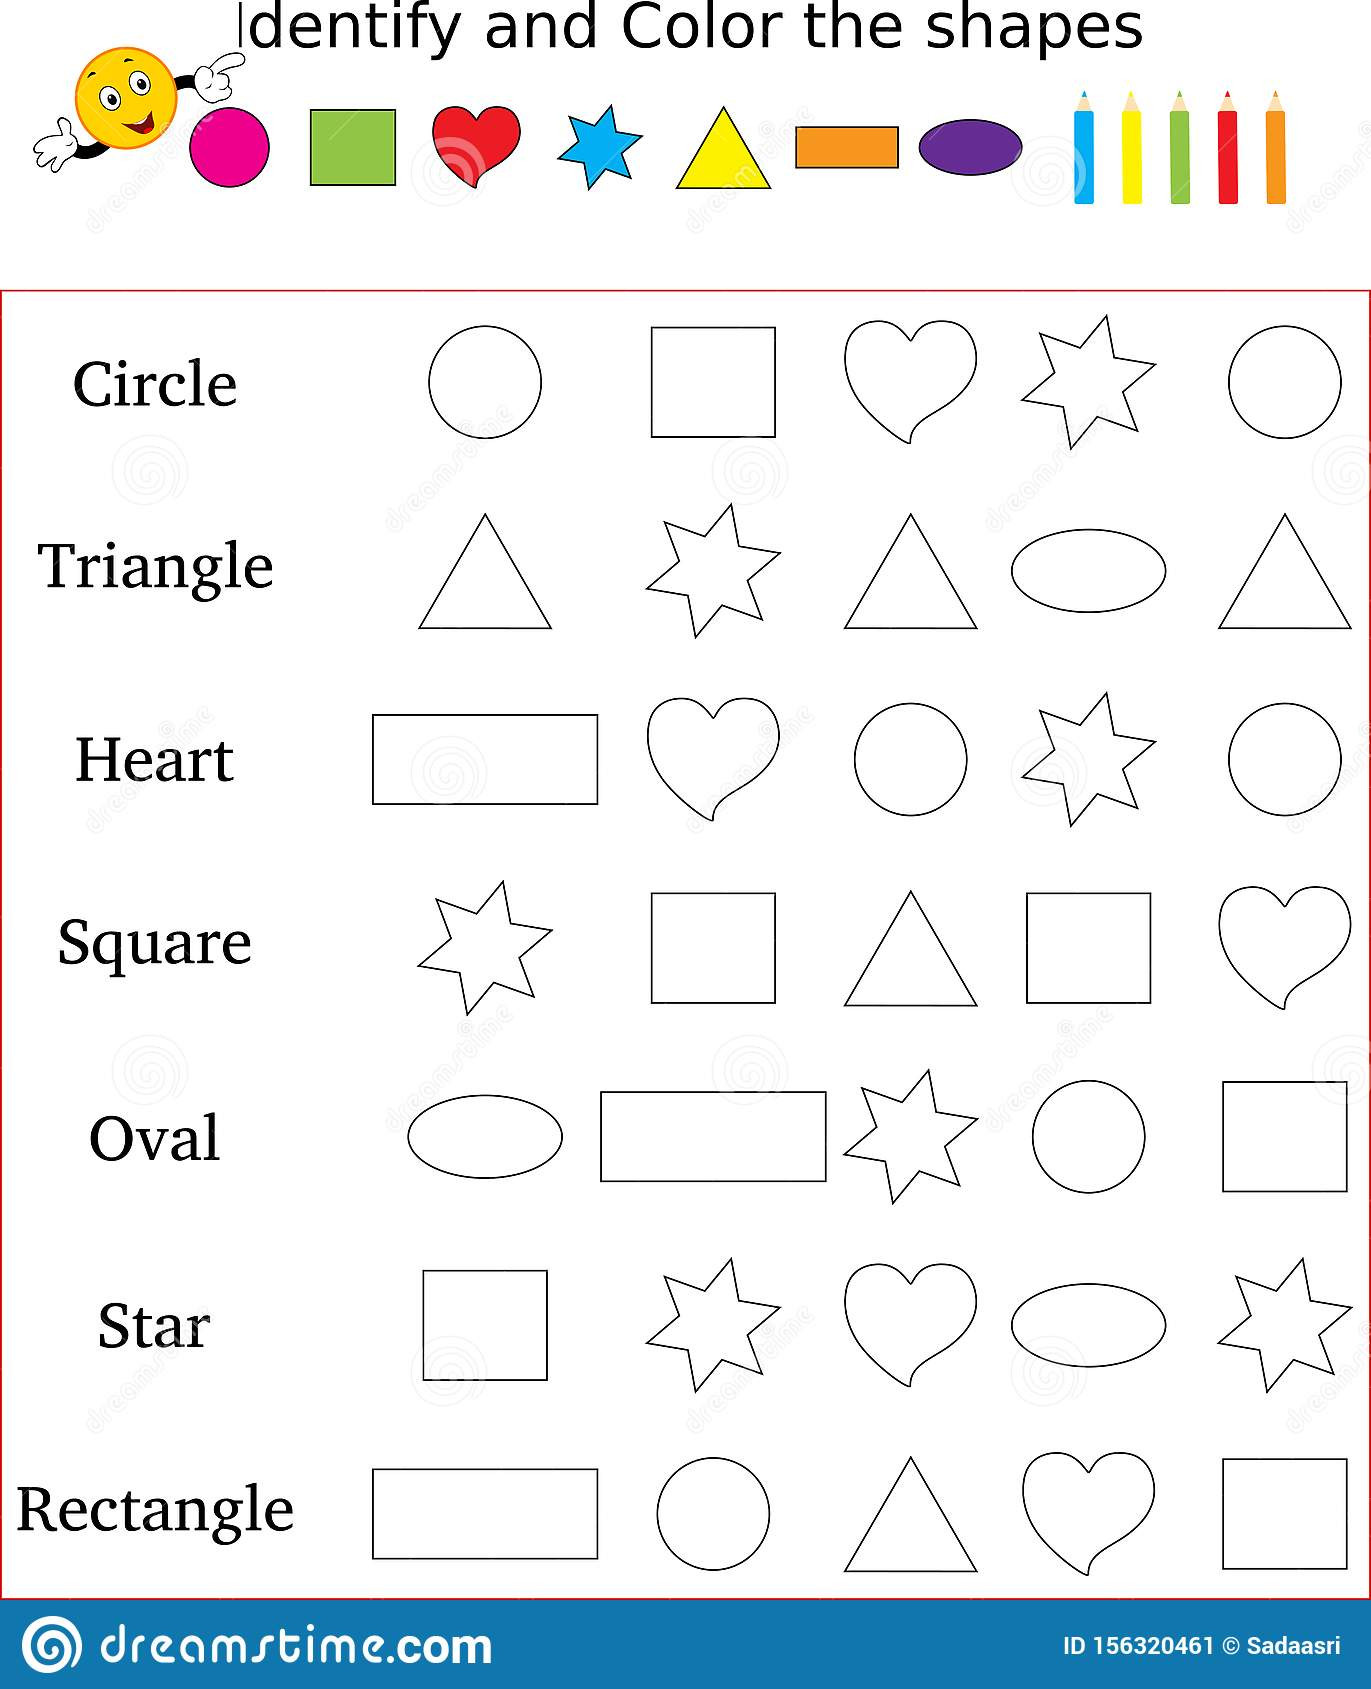 Polygon Worksheets 3rd Grade Identify and Color the Correct Shape Worksheet Stock Image